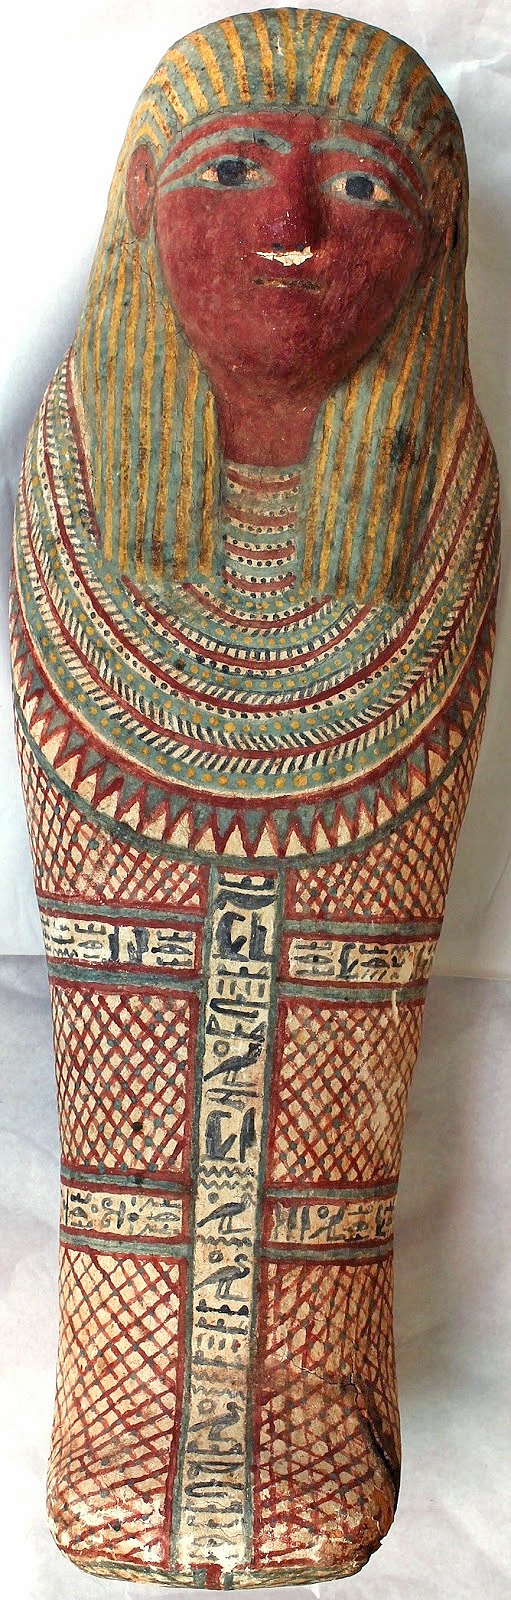 W1013, the Egyptian mummy of a baby from 600BC